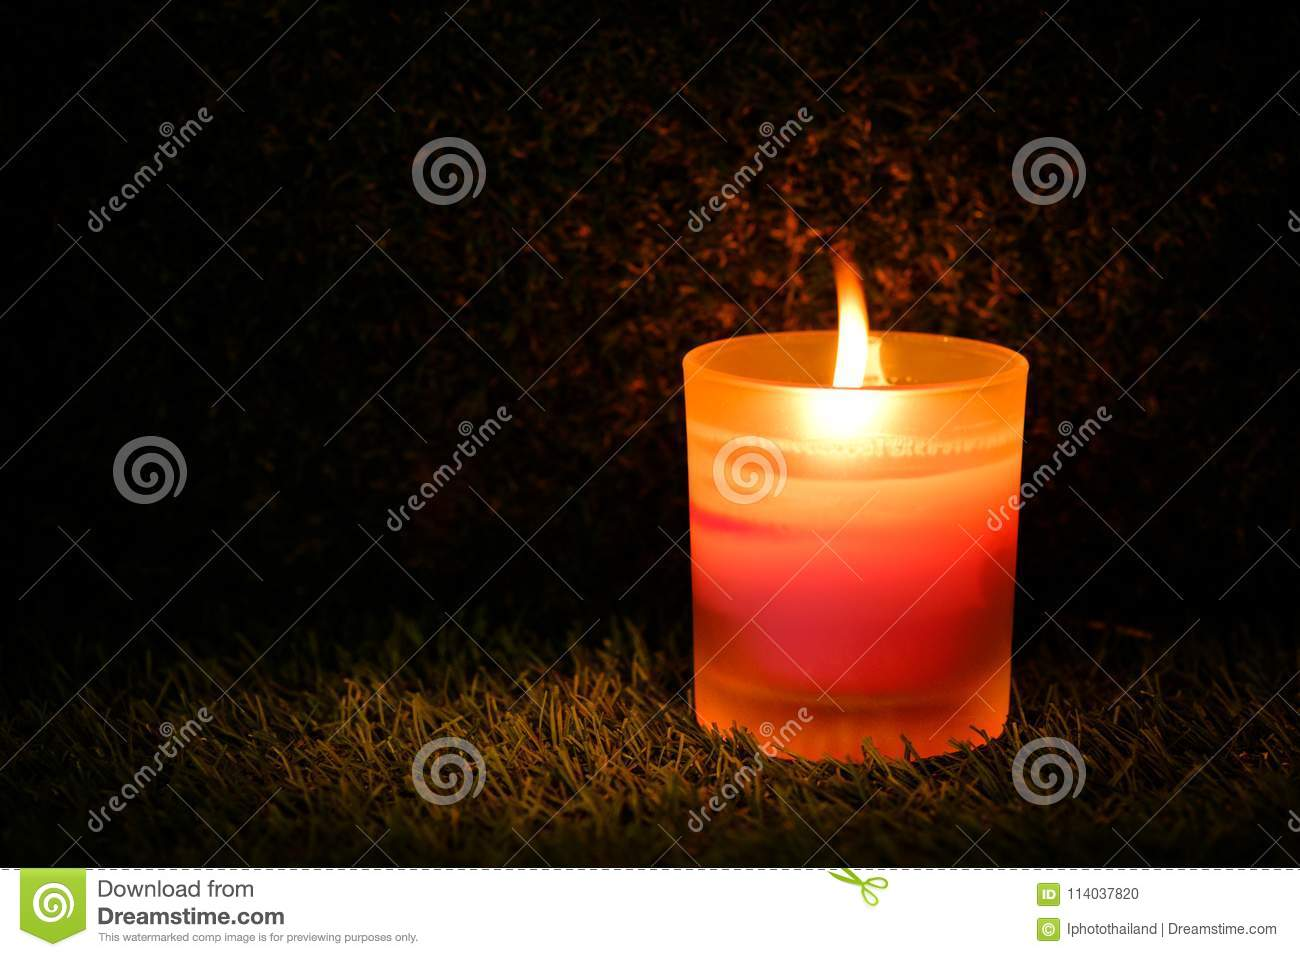 Prayer and hope concept. Retro pink candle light in crystal glass